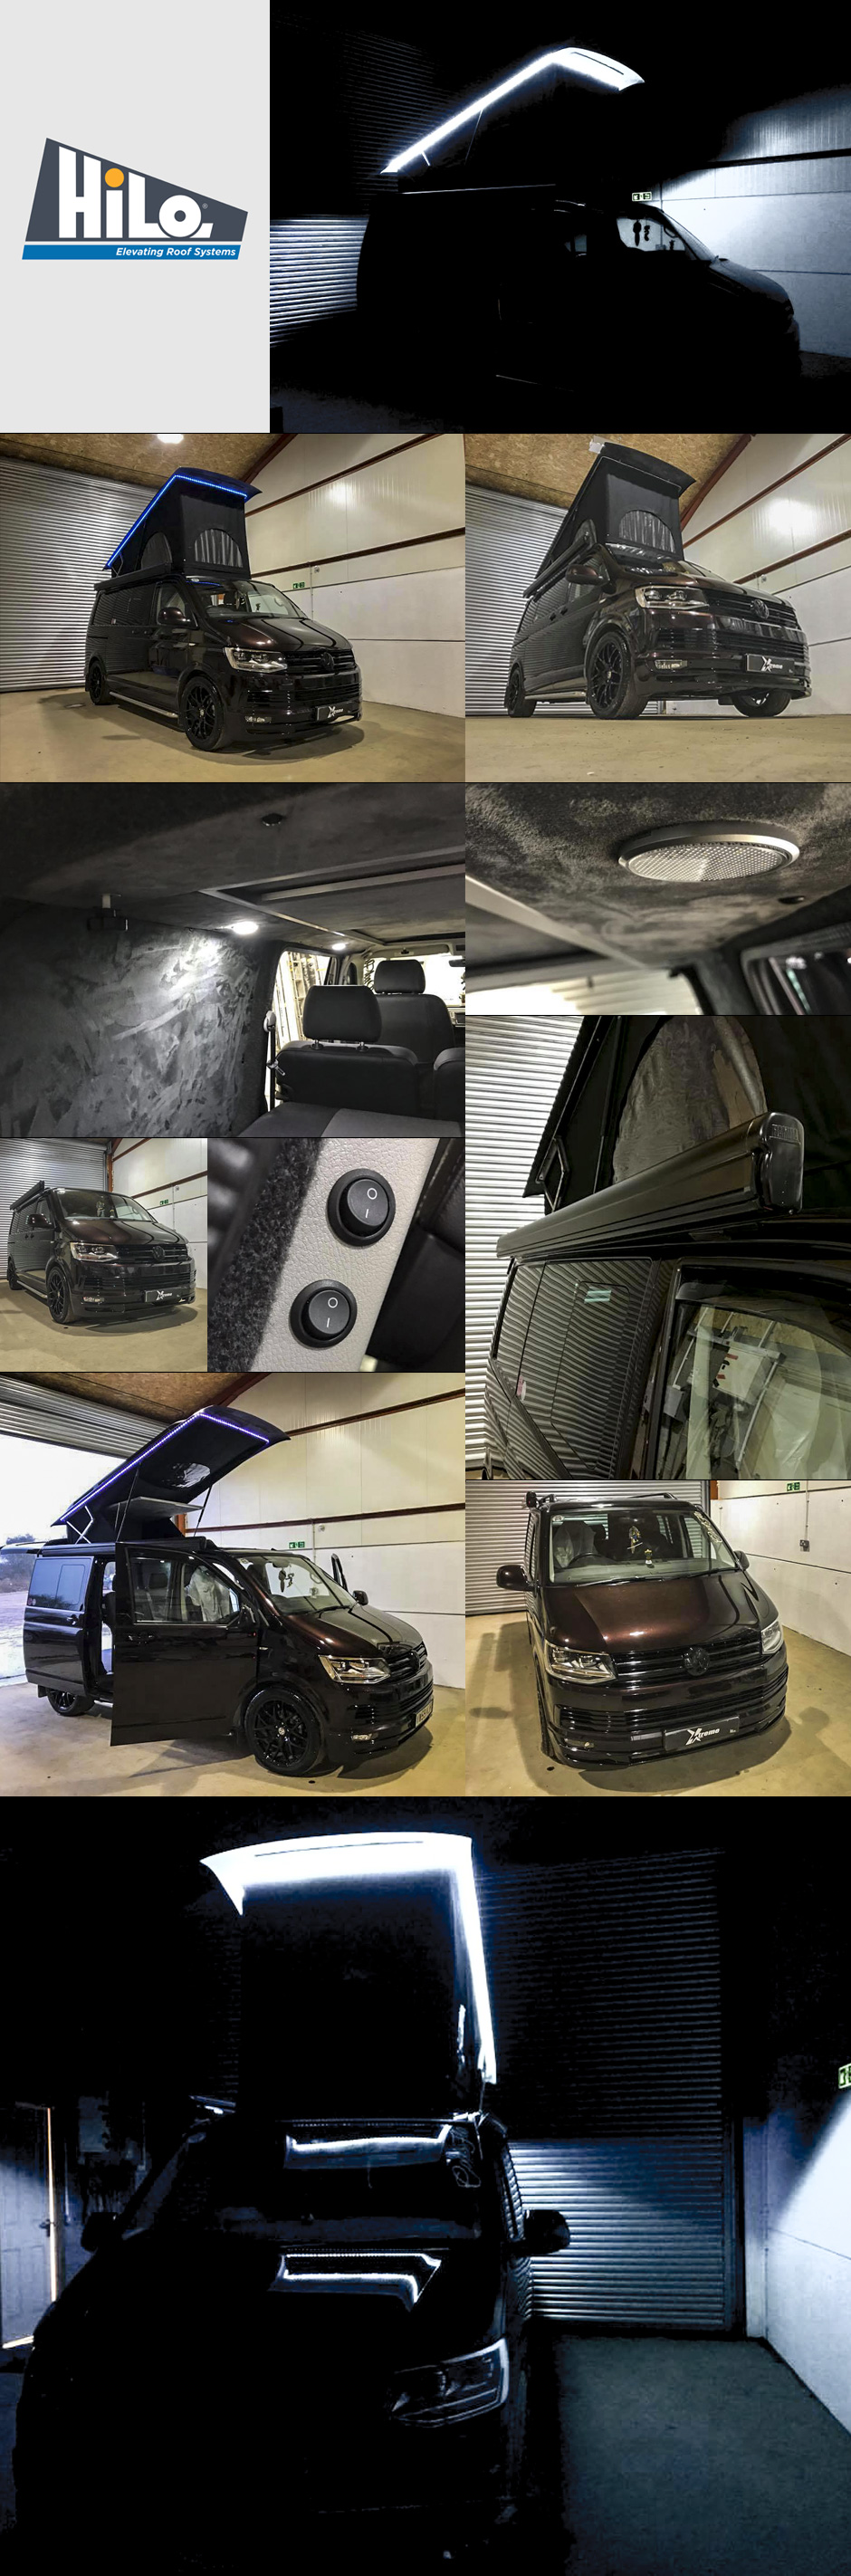 hiloroof fitters xtremevan vw t5 t6 conversions